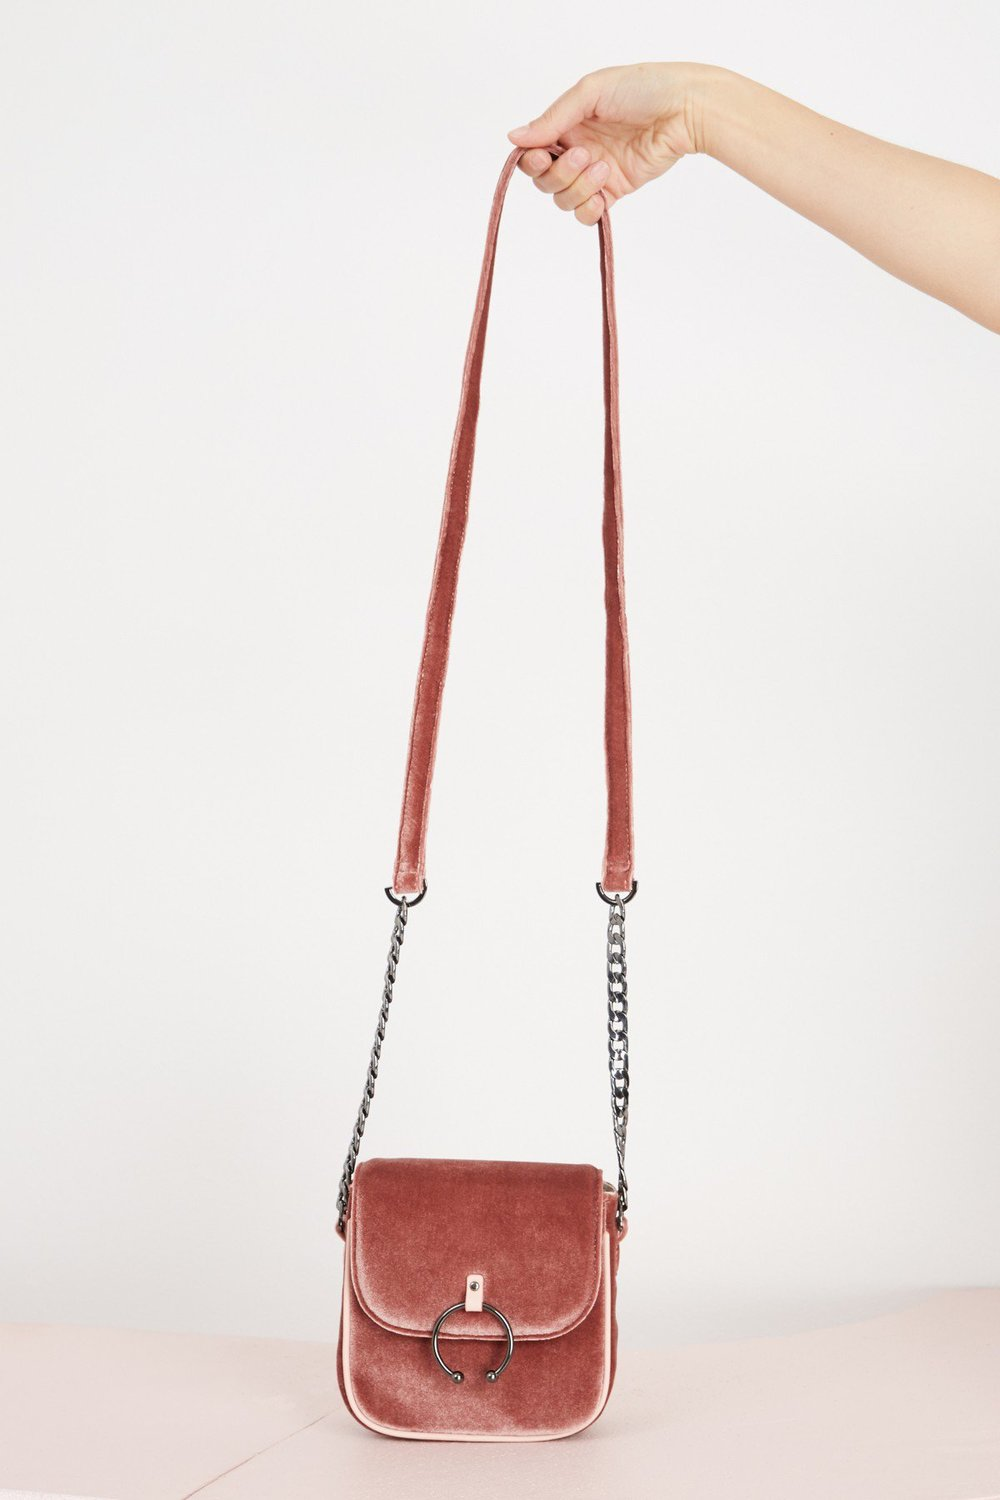 Shop JAGGAR Chained Bag.